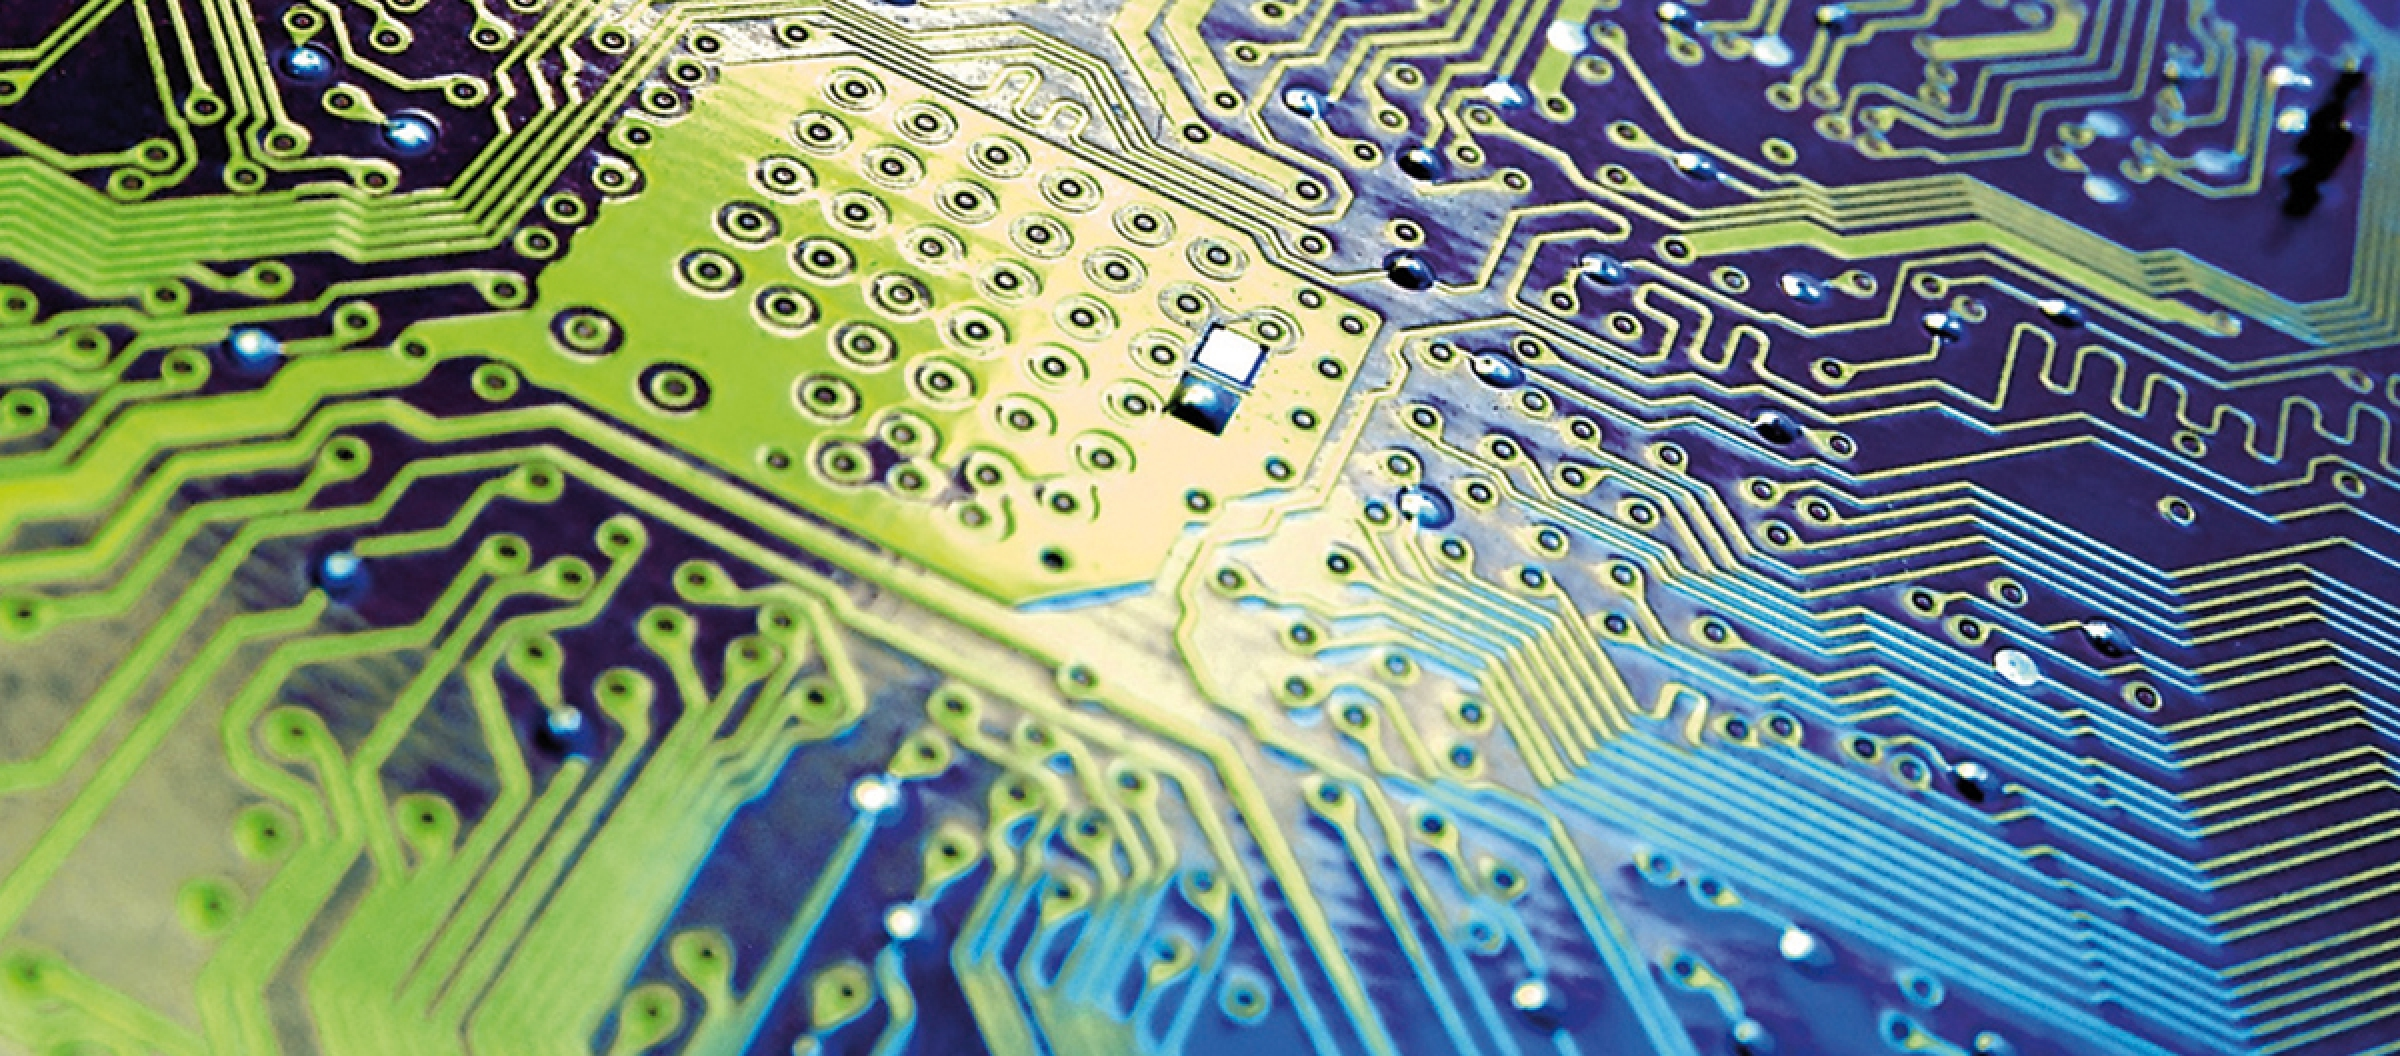 High Tech Printed Electronics